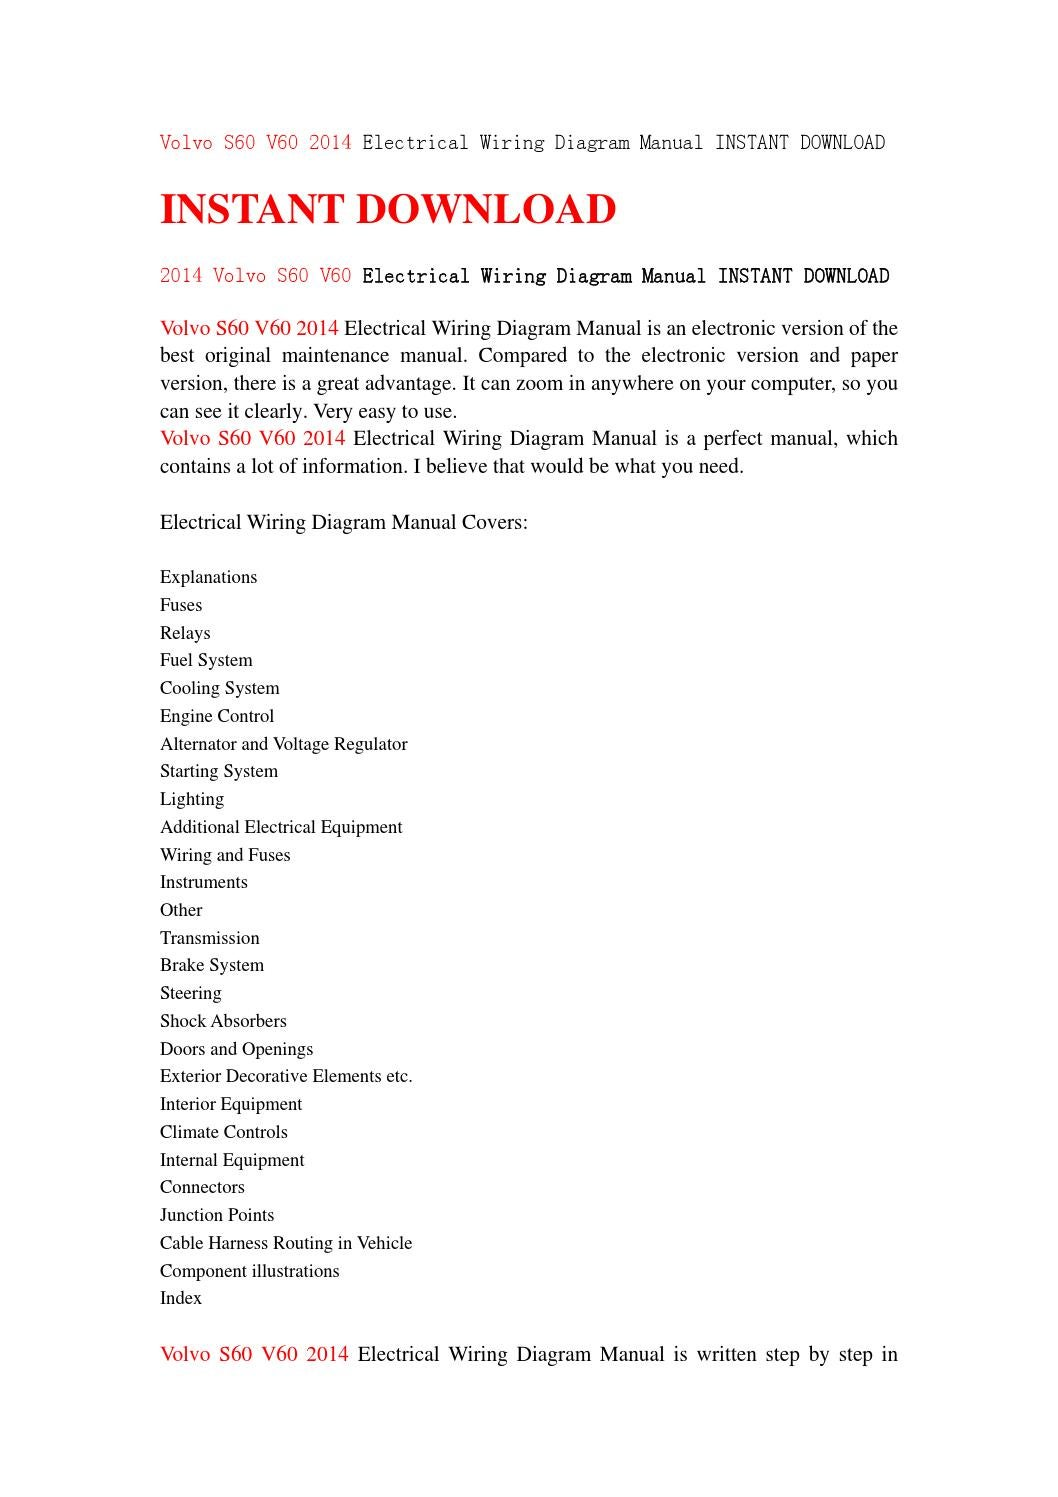 hight resolution of volvo s60 v60 2014 electrical wiring diagram manual instant download by jfhsejfn issuu